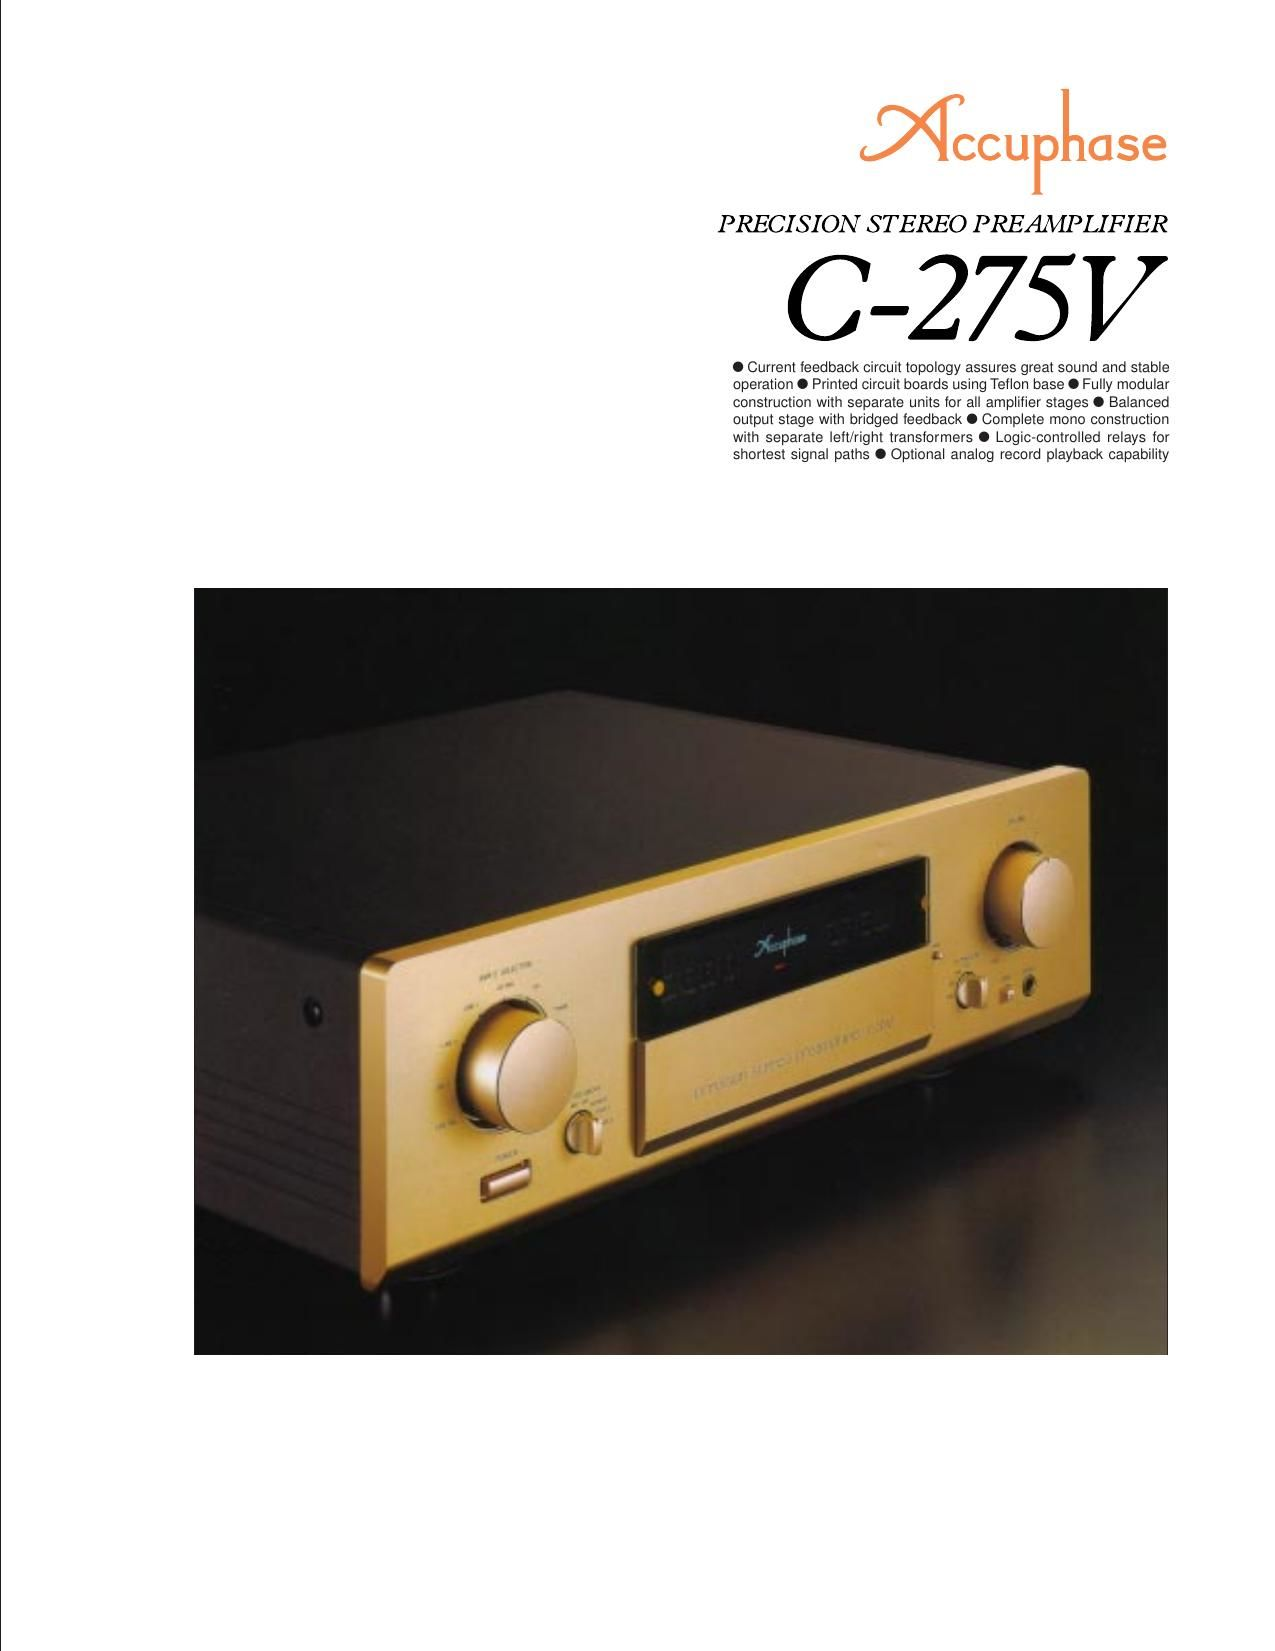 Accuphase C 275 V Brochure